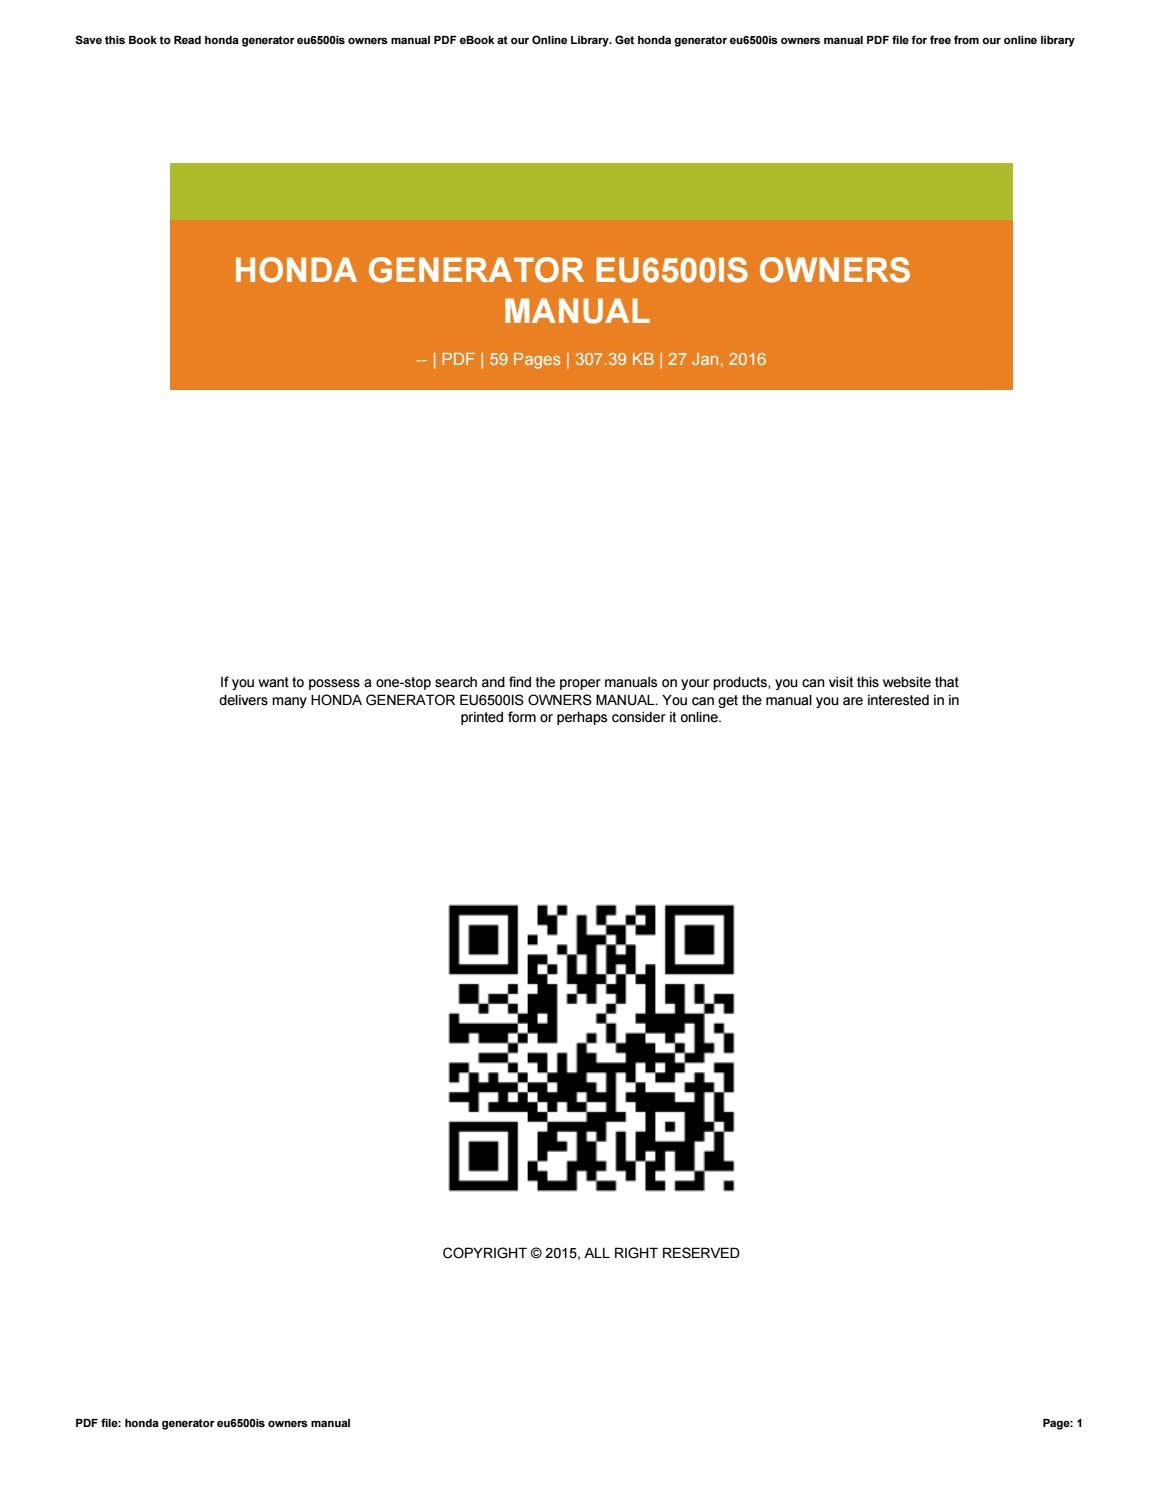 honda 6500 generator repair manual ebook